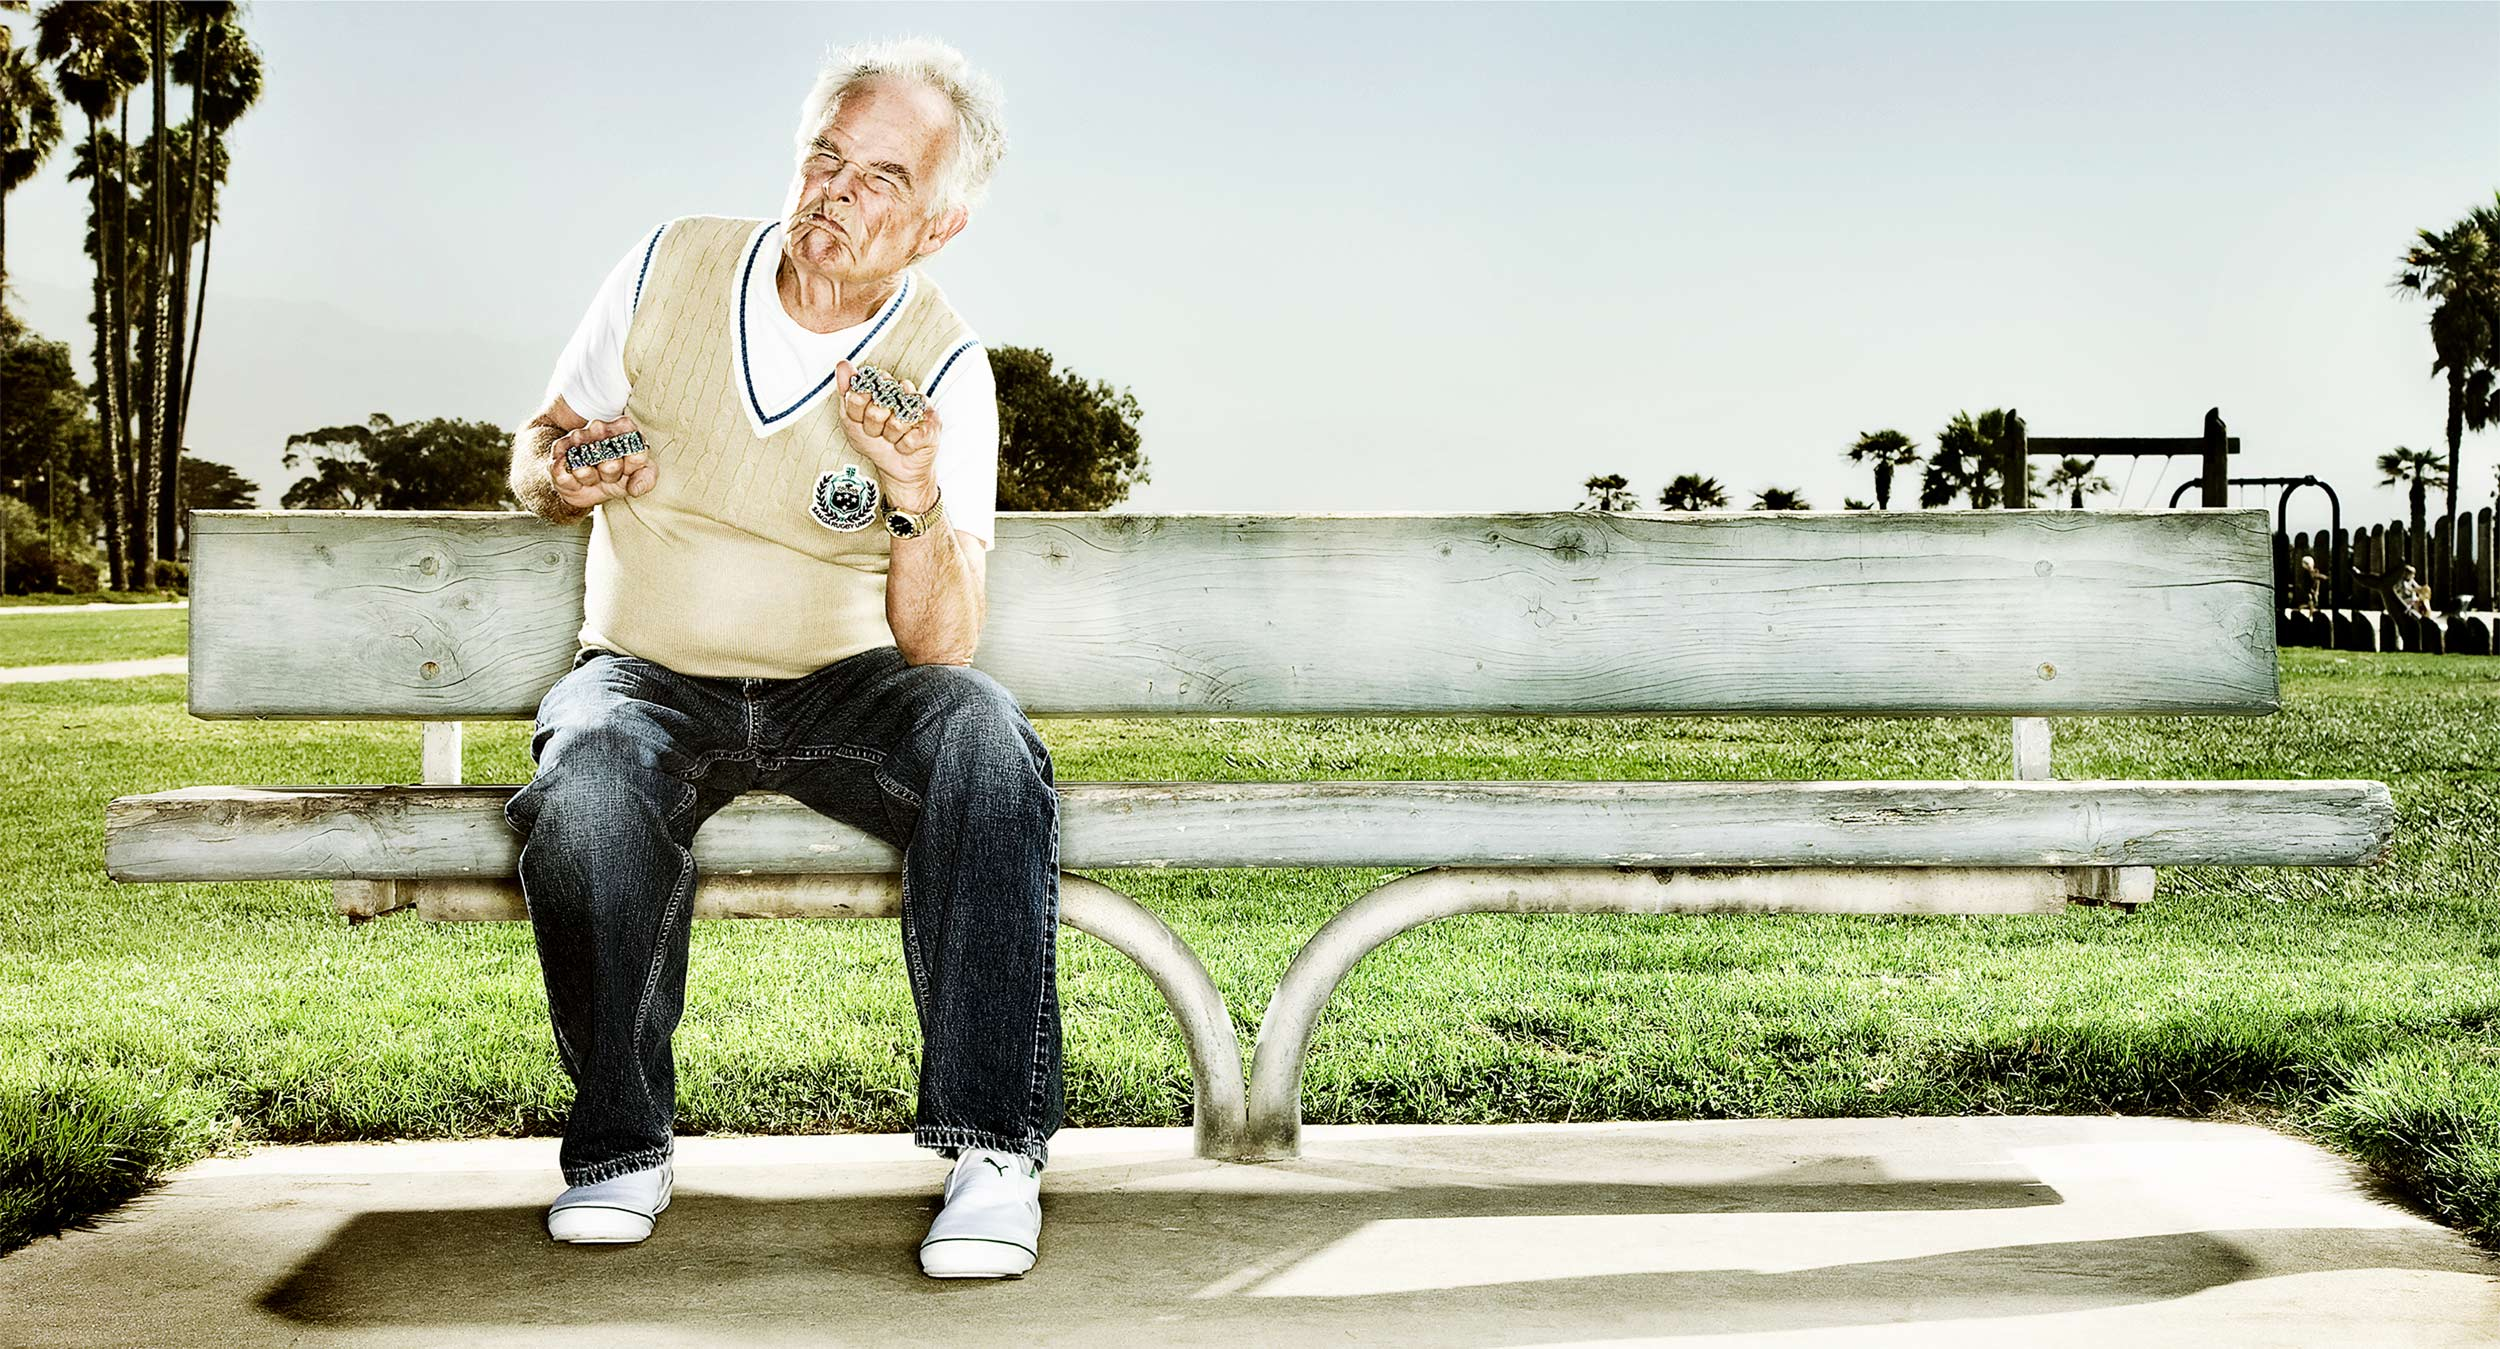 Old_People-Larrys_Bench-Corey_Nickols